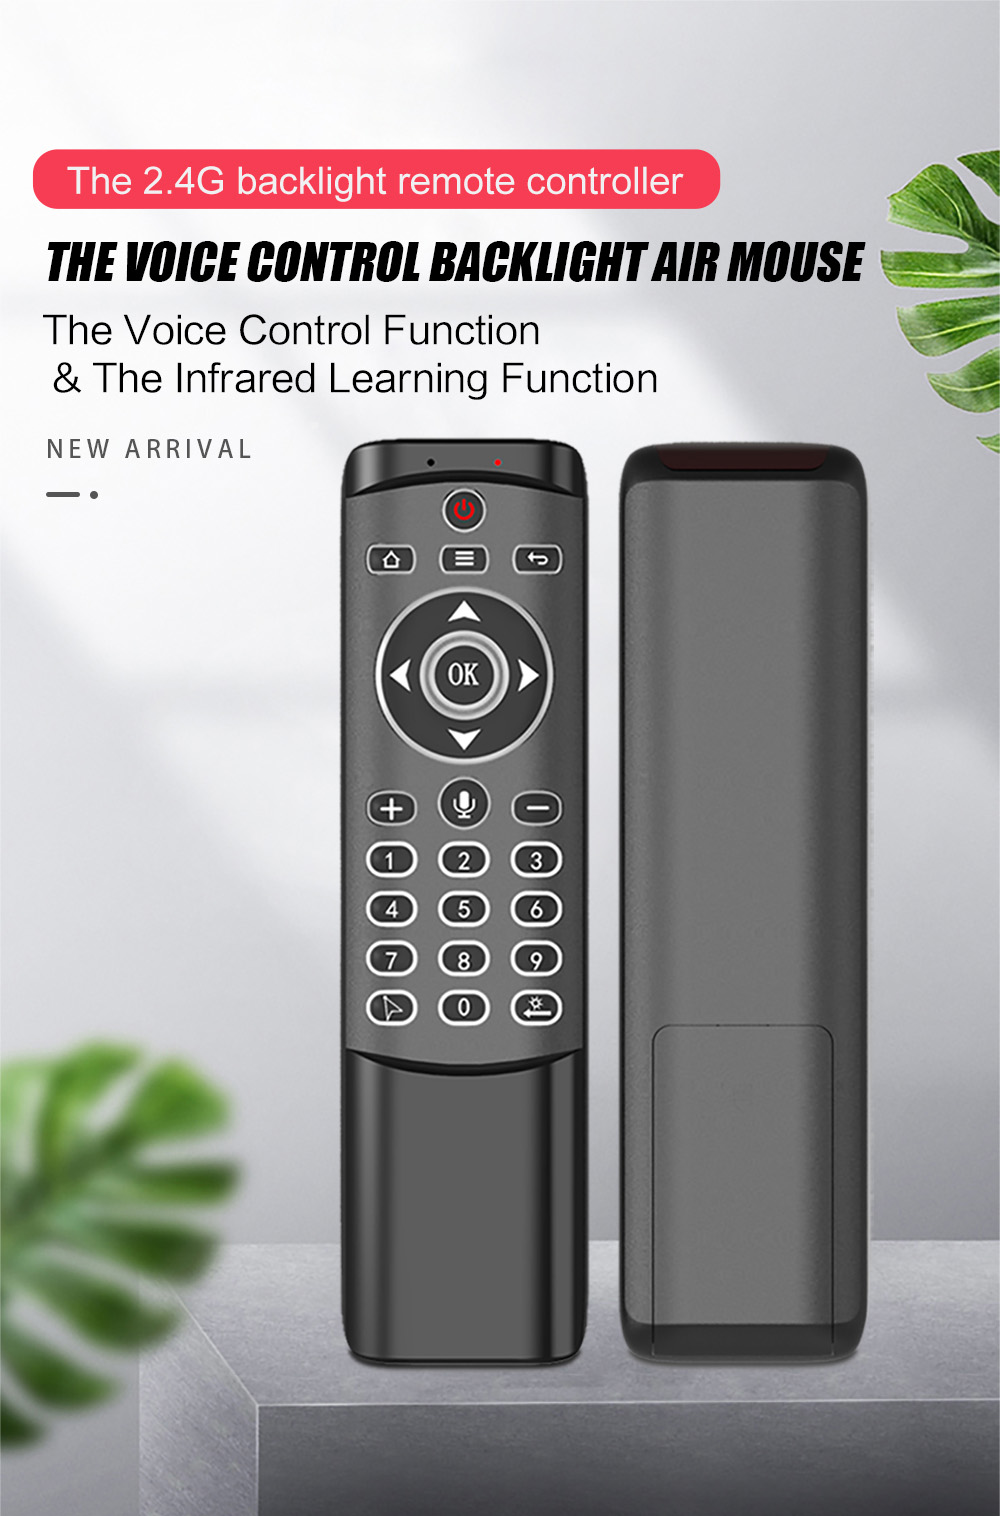 MT1 Wireless Voice Control Remote Control 2.4G Air Mouse - Black